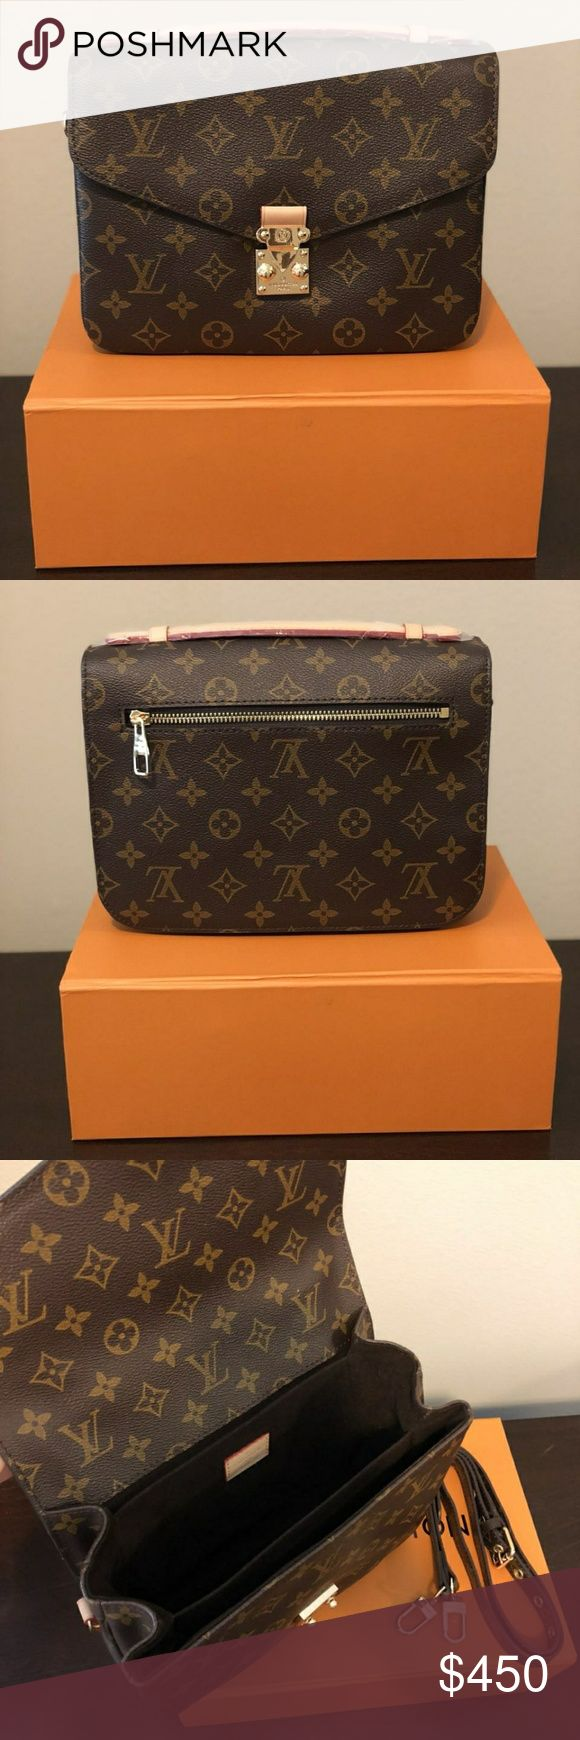 Luxury LV Bag High quality luxury bag 1:1 Comes with box and dust bag. Price reflects the authenticity. Louis Vuitton Bags